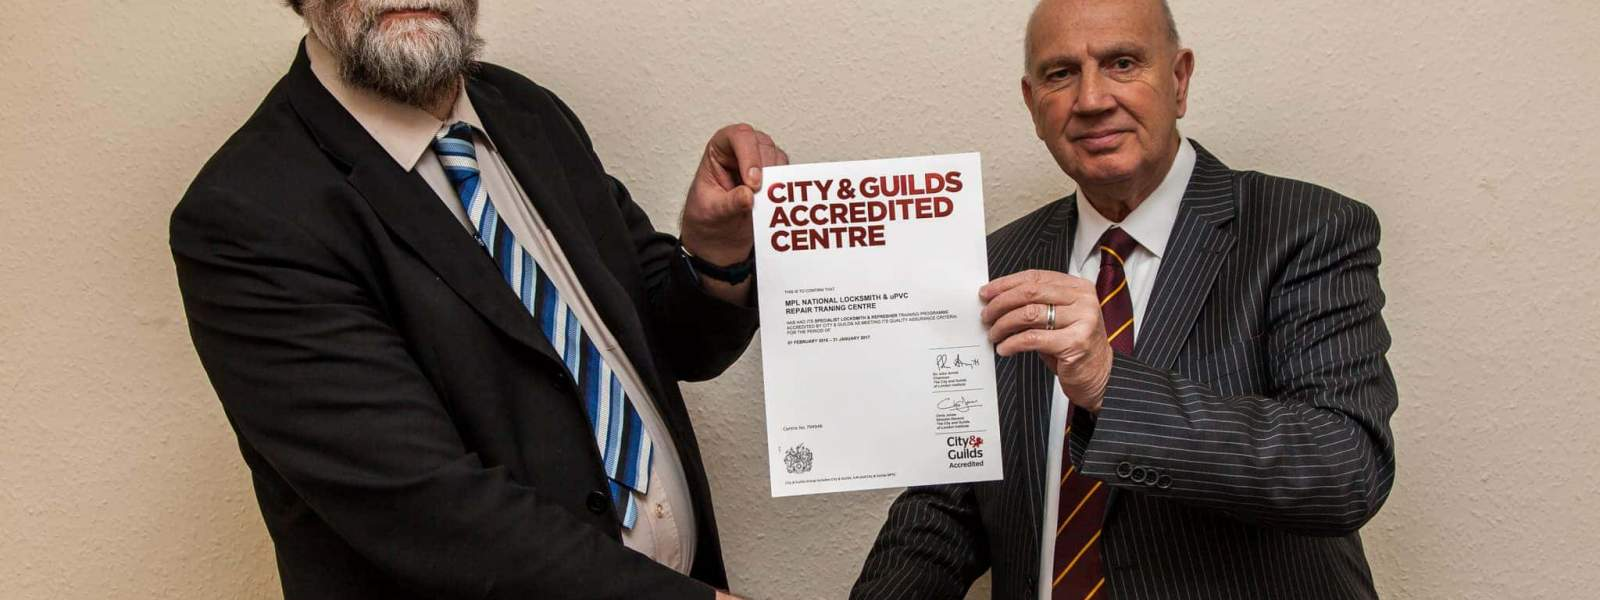 City & Guilds Accredited Centre Certificate Presentation